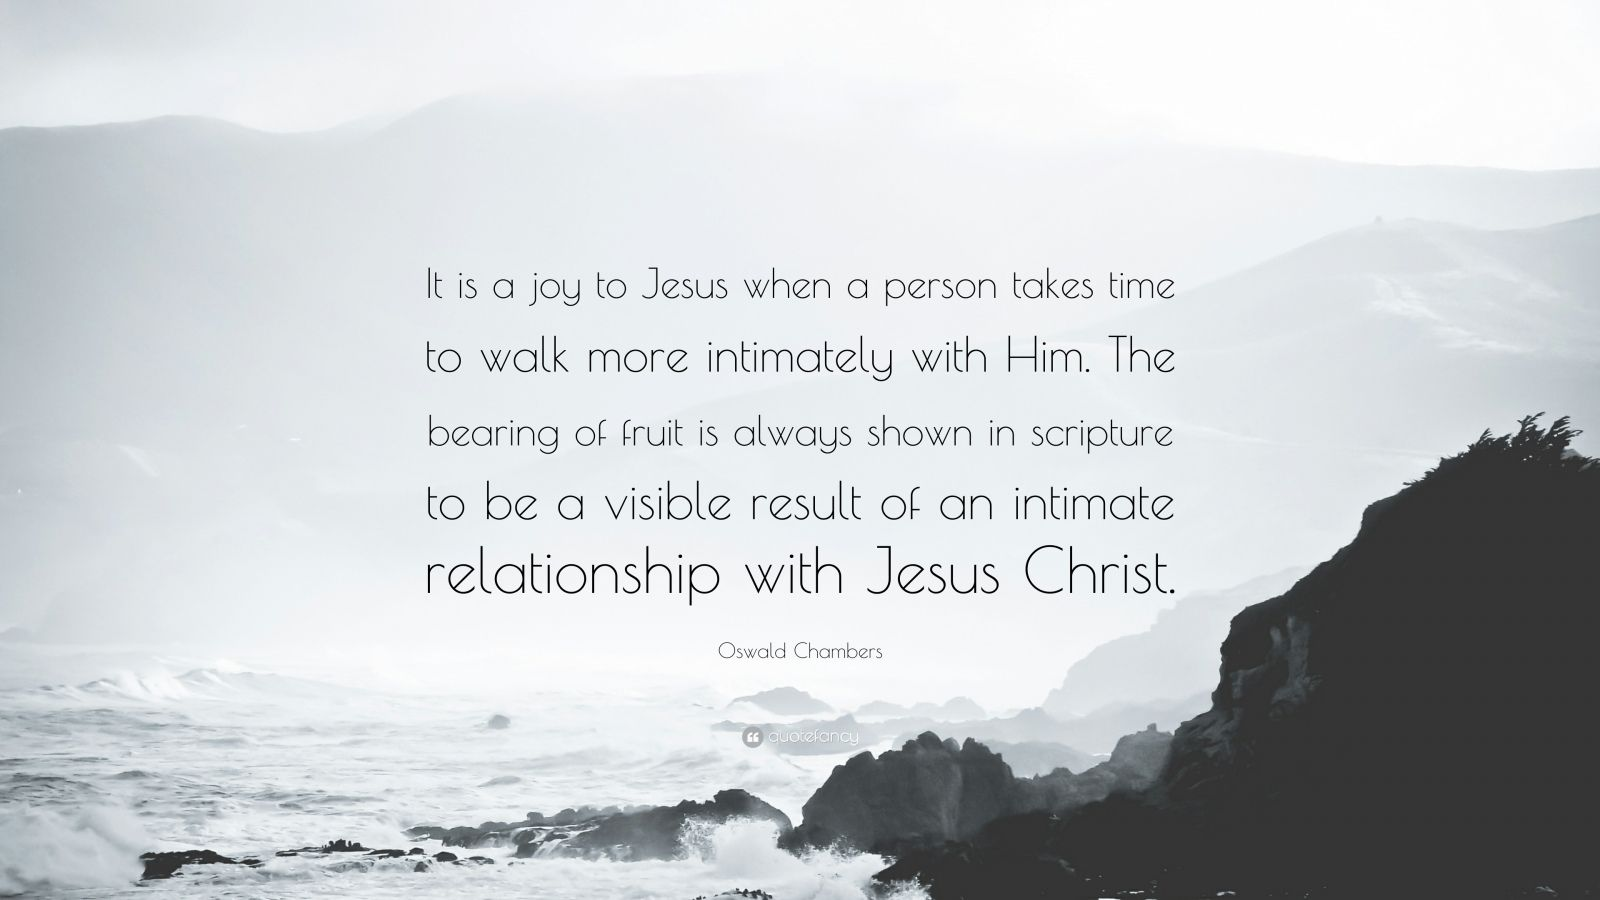 """Oswald Chambers Quote: """"It is a joy to Jesus when a person takes time to walk more intimately with Him. The bearing of fruit is always shown in scripture to be a visible result of an intimate relationship with Jesus Christ."""""""